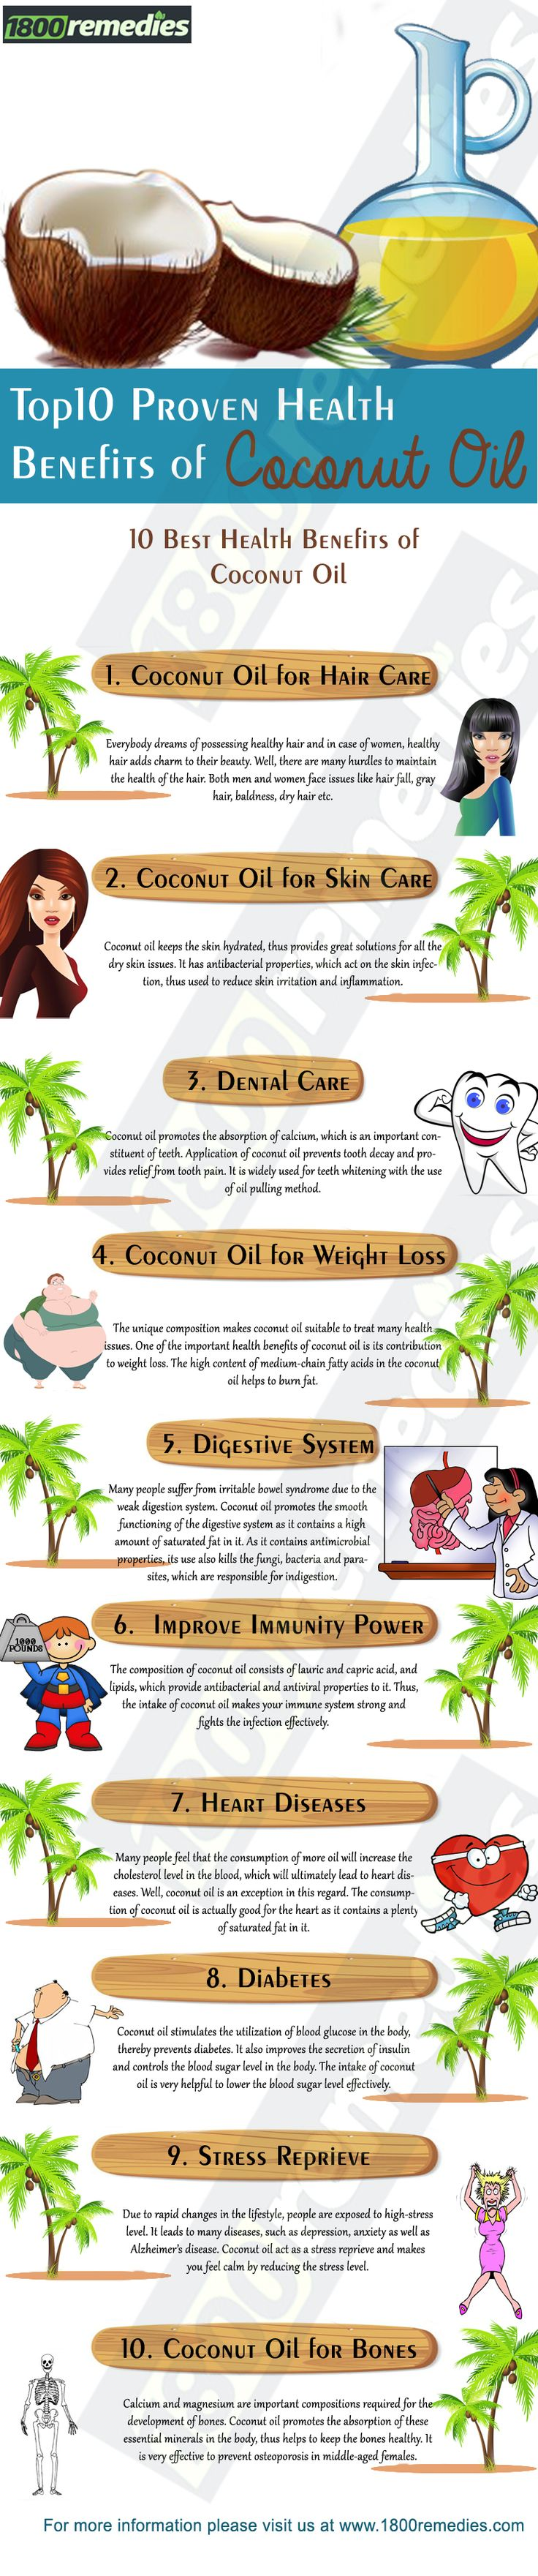 10 Best Health Benefits of Coconut Oil As coconut oil has a lot of medicinal properties, it is used in many home remedies to treat various health issues related to hair, skin, digestion and many more. Let us understand in detail the health benefits of coconut oil and how you can use it to get rid of various diseases.